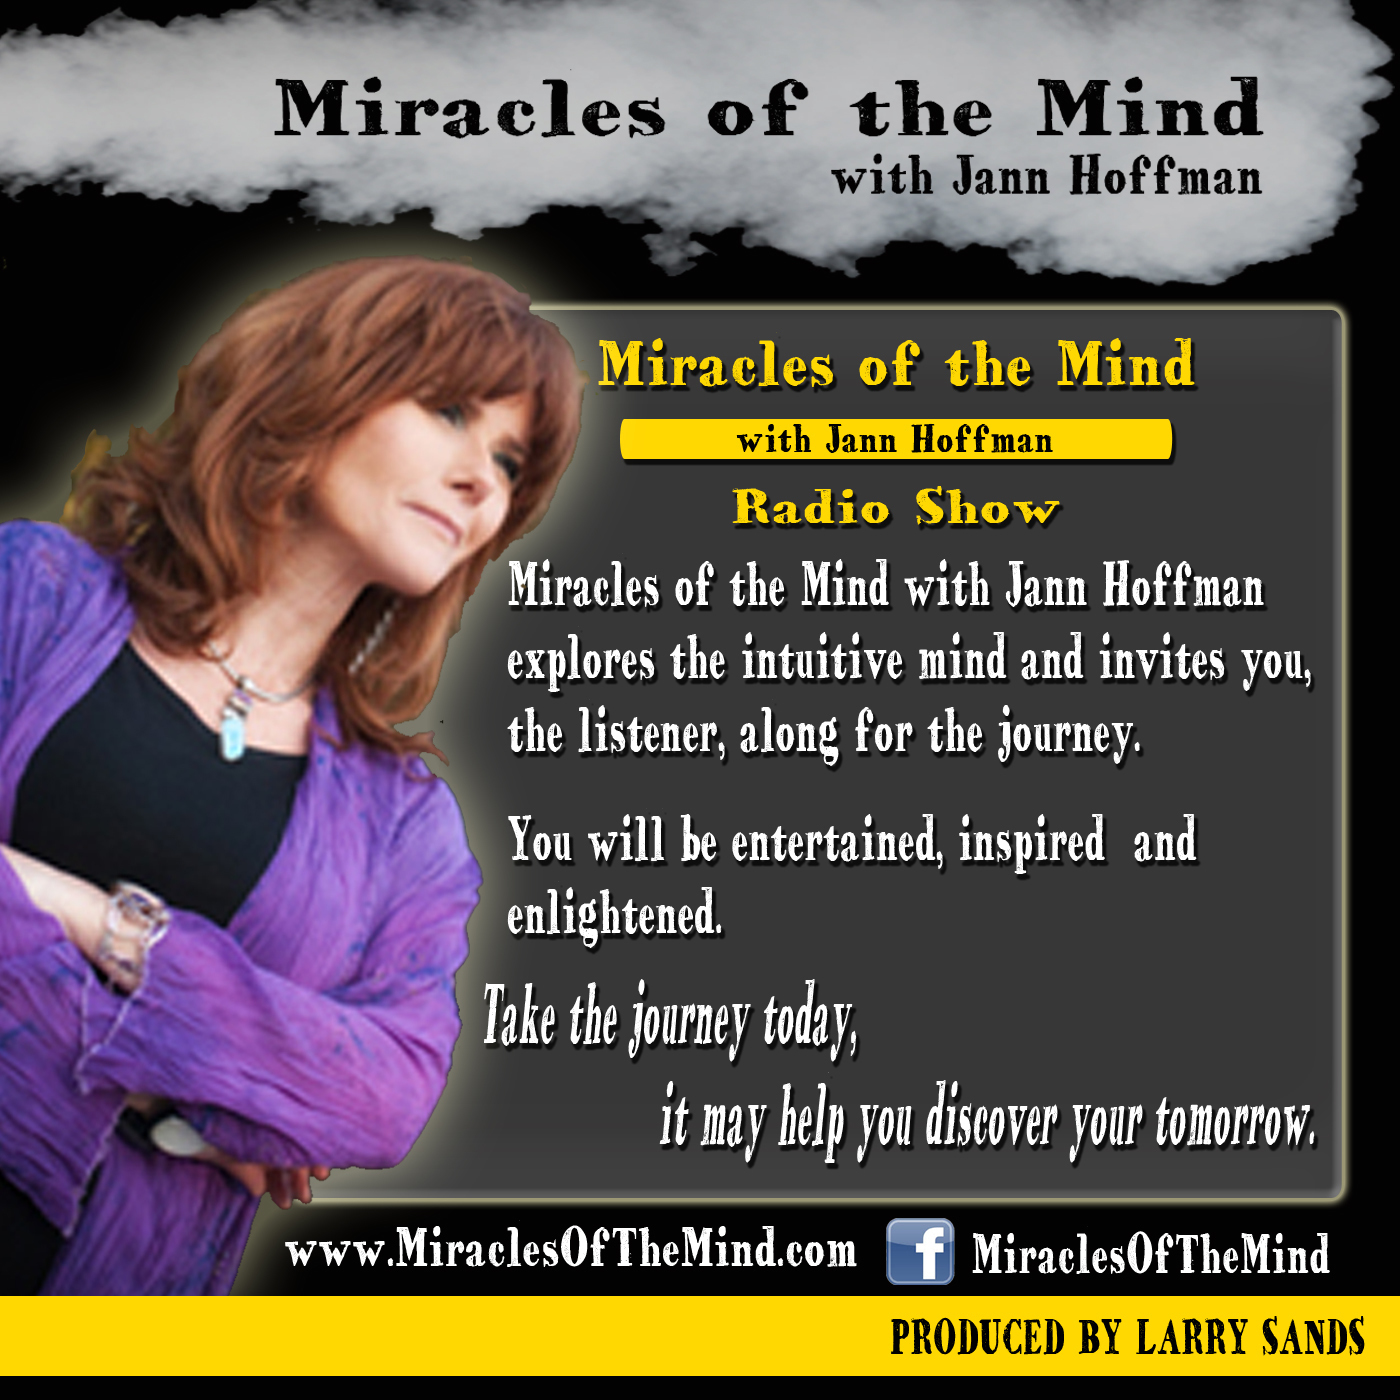 <![CDATA[Miracles of the Mind with Jann Hoffman]]>